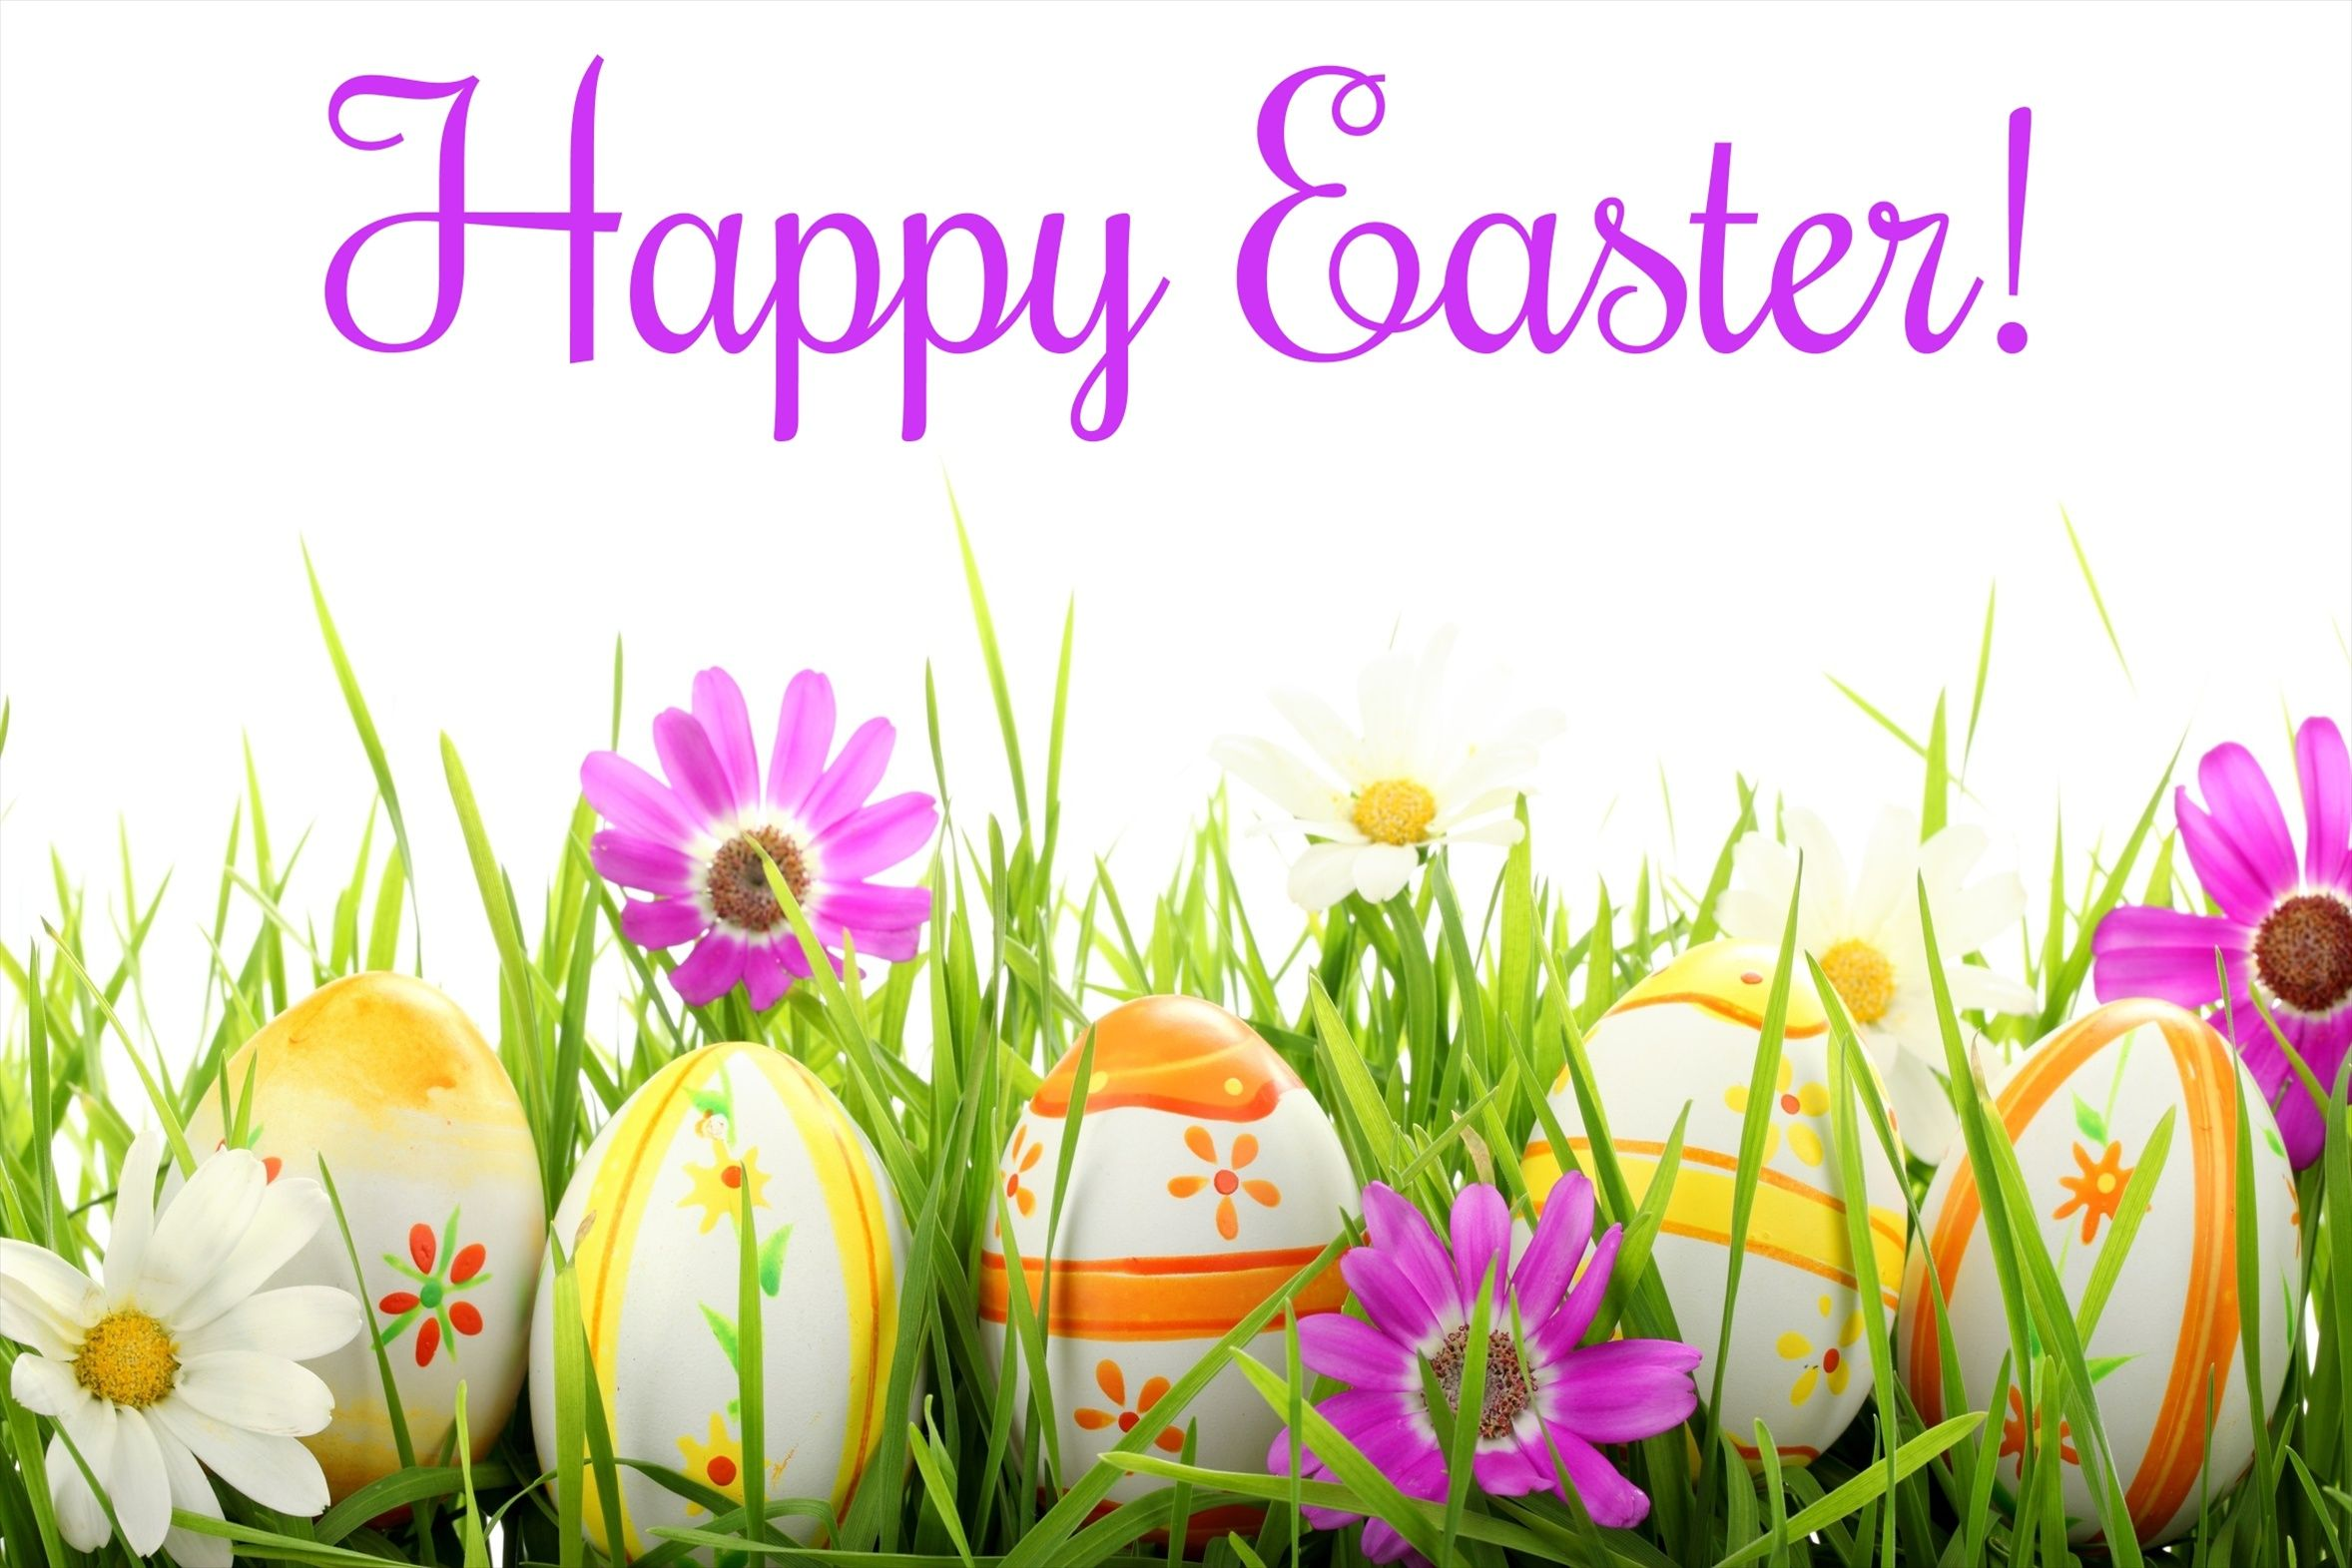 Happy easter from immediate safety httpsimmediatesafety orthodox happy easter monday quotes sayings messages wishes wallpapers 2015 kristyandbryce Image collections